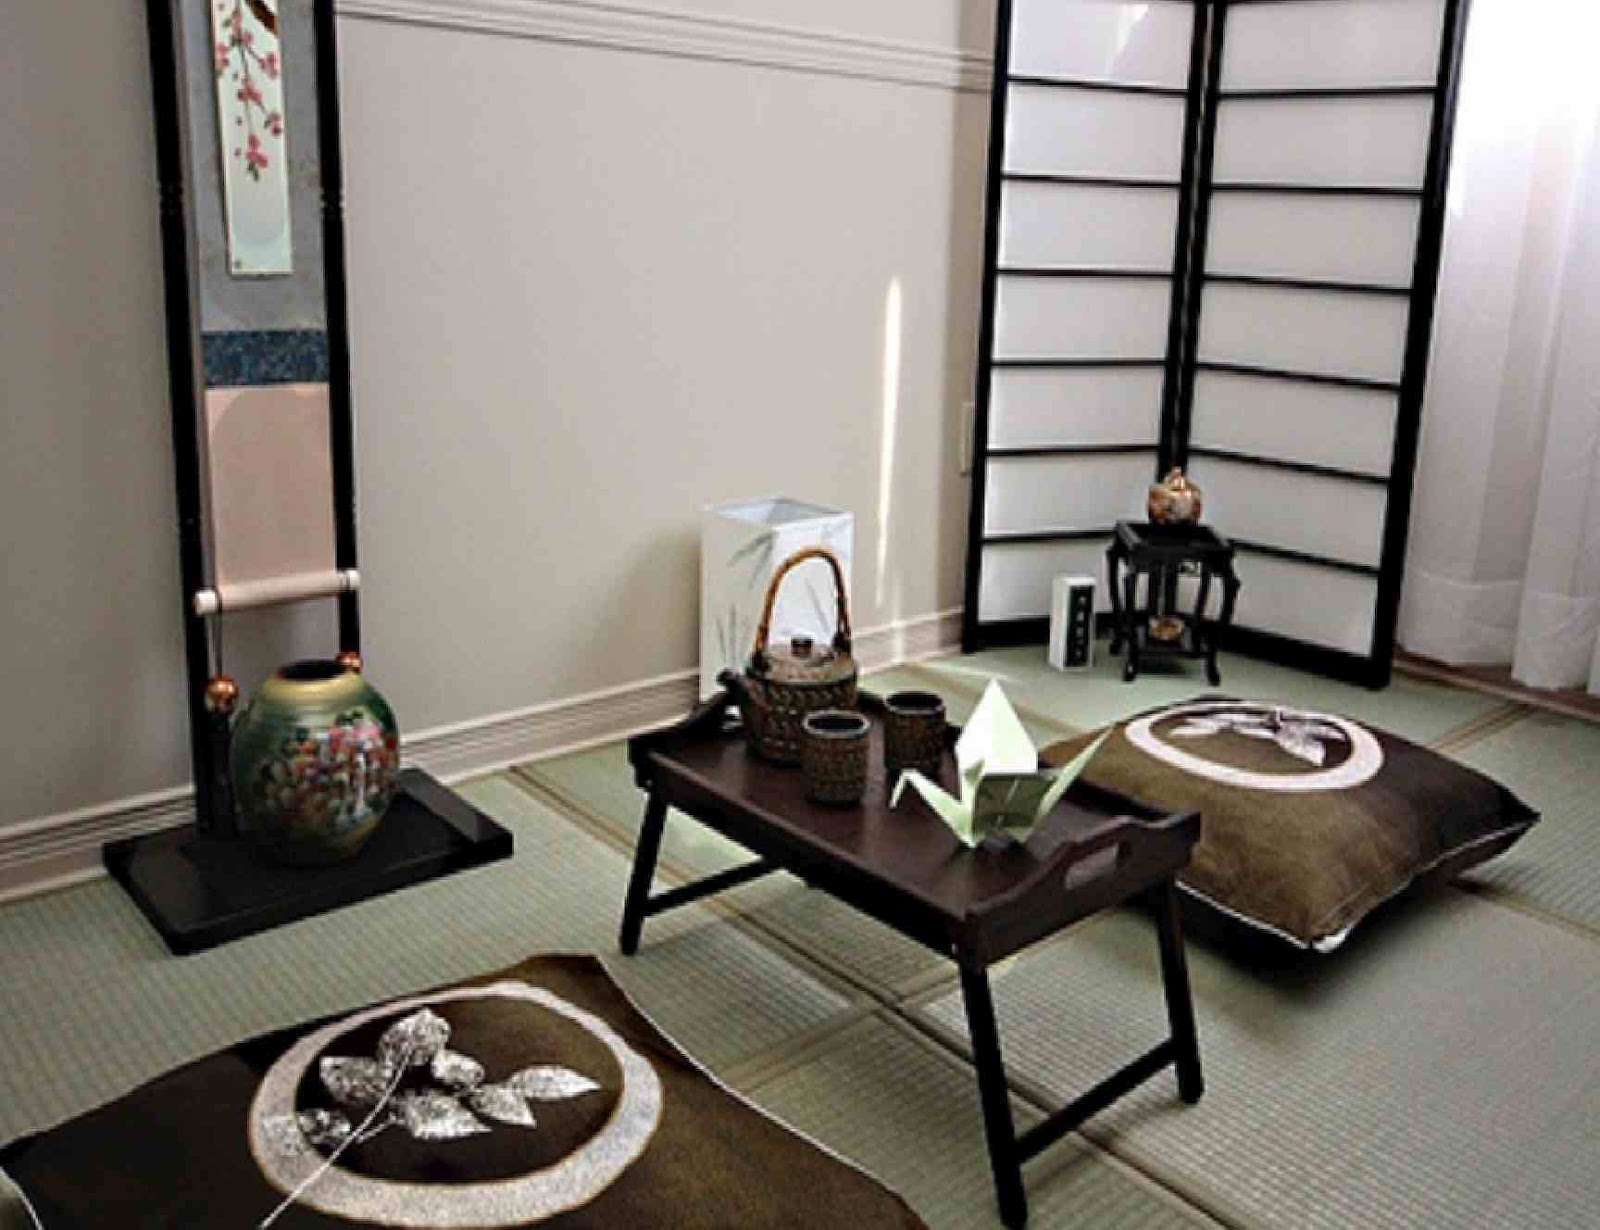 Japanese interior design interior home design Design interior